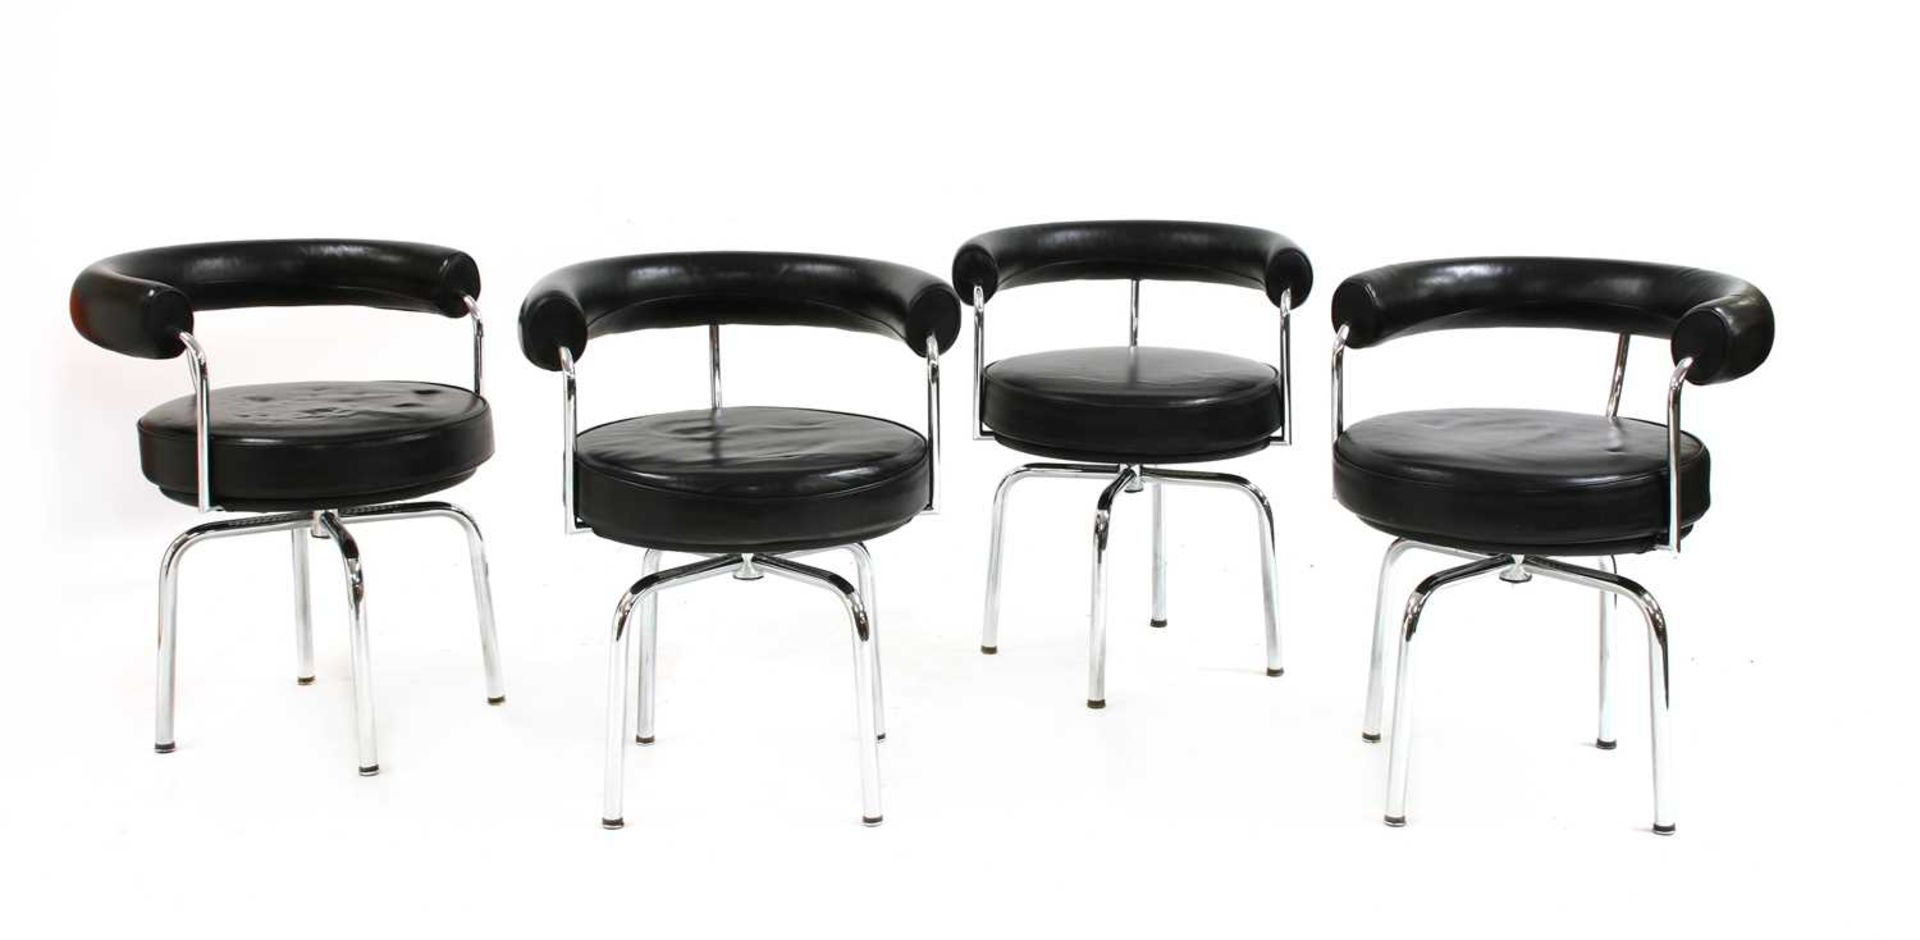 Four contemporary revolving chairs, - Image 2 of 4